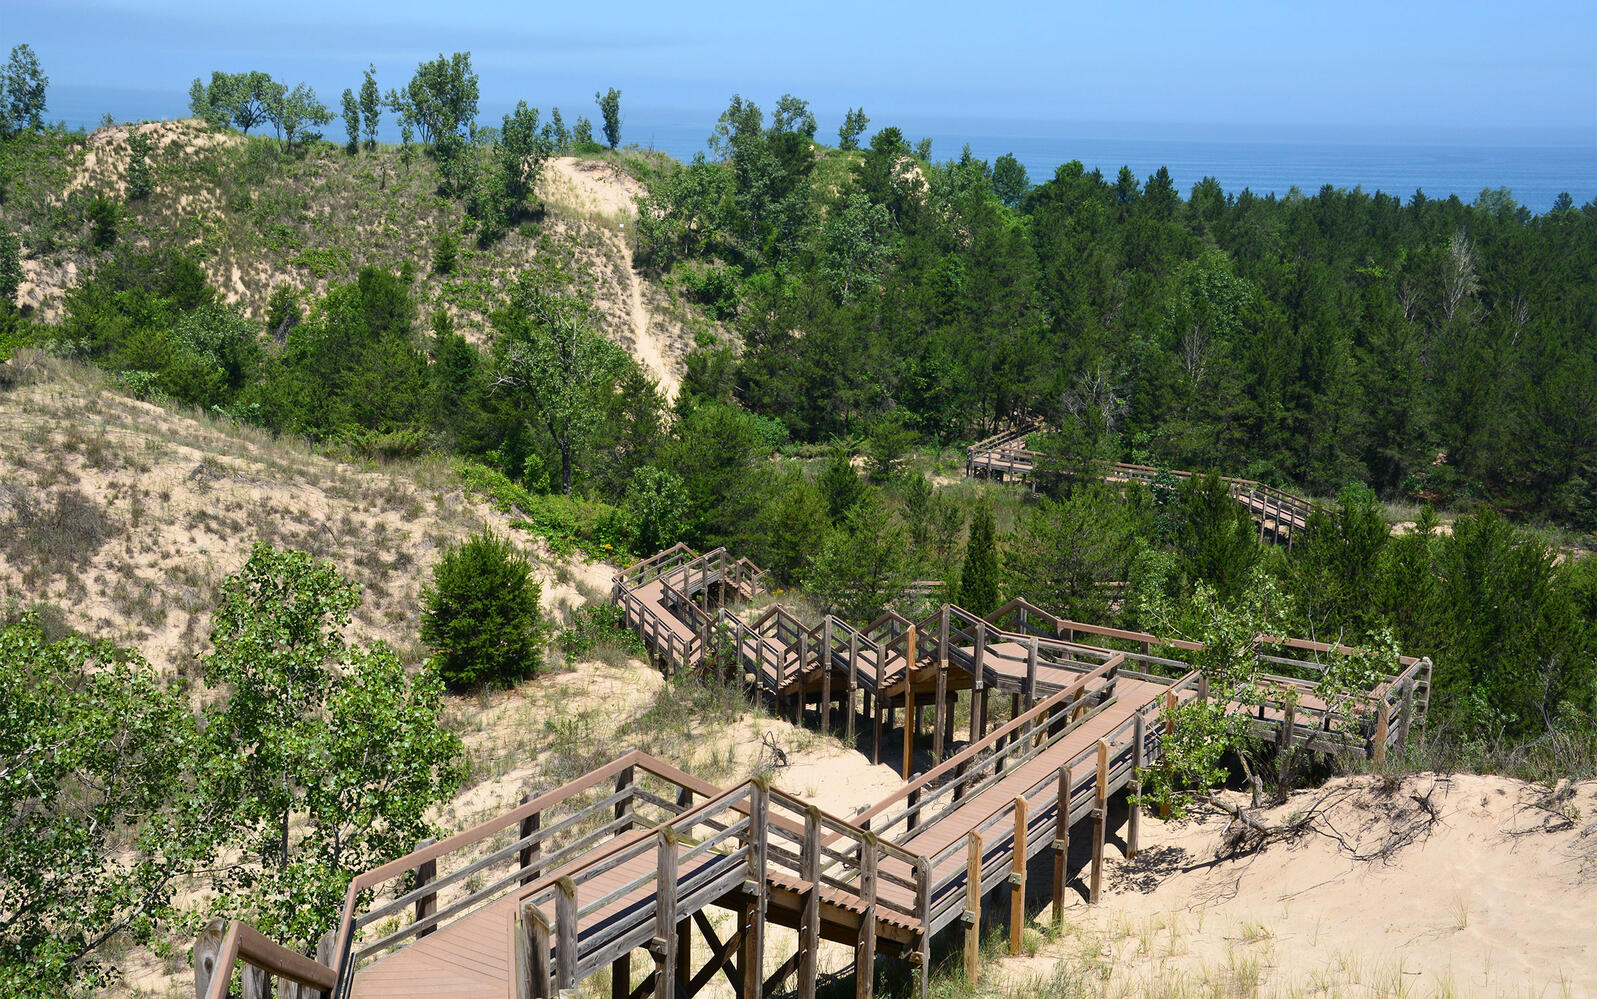 Indiana Dunes National Park. D. Guest Smith/Alamy